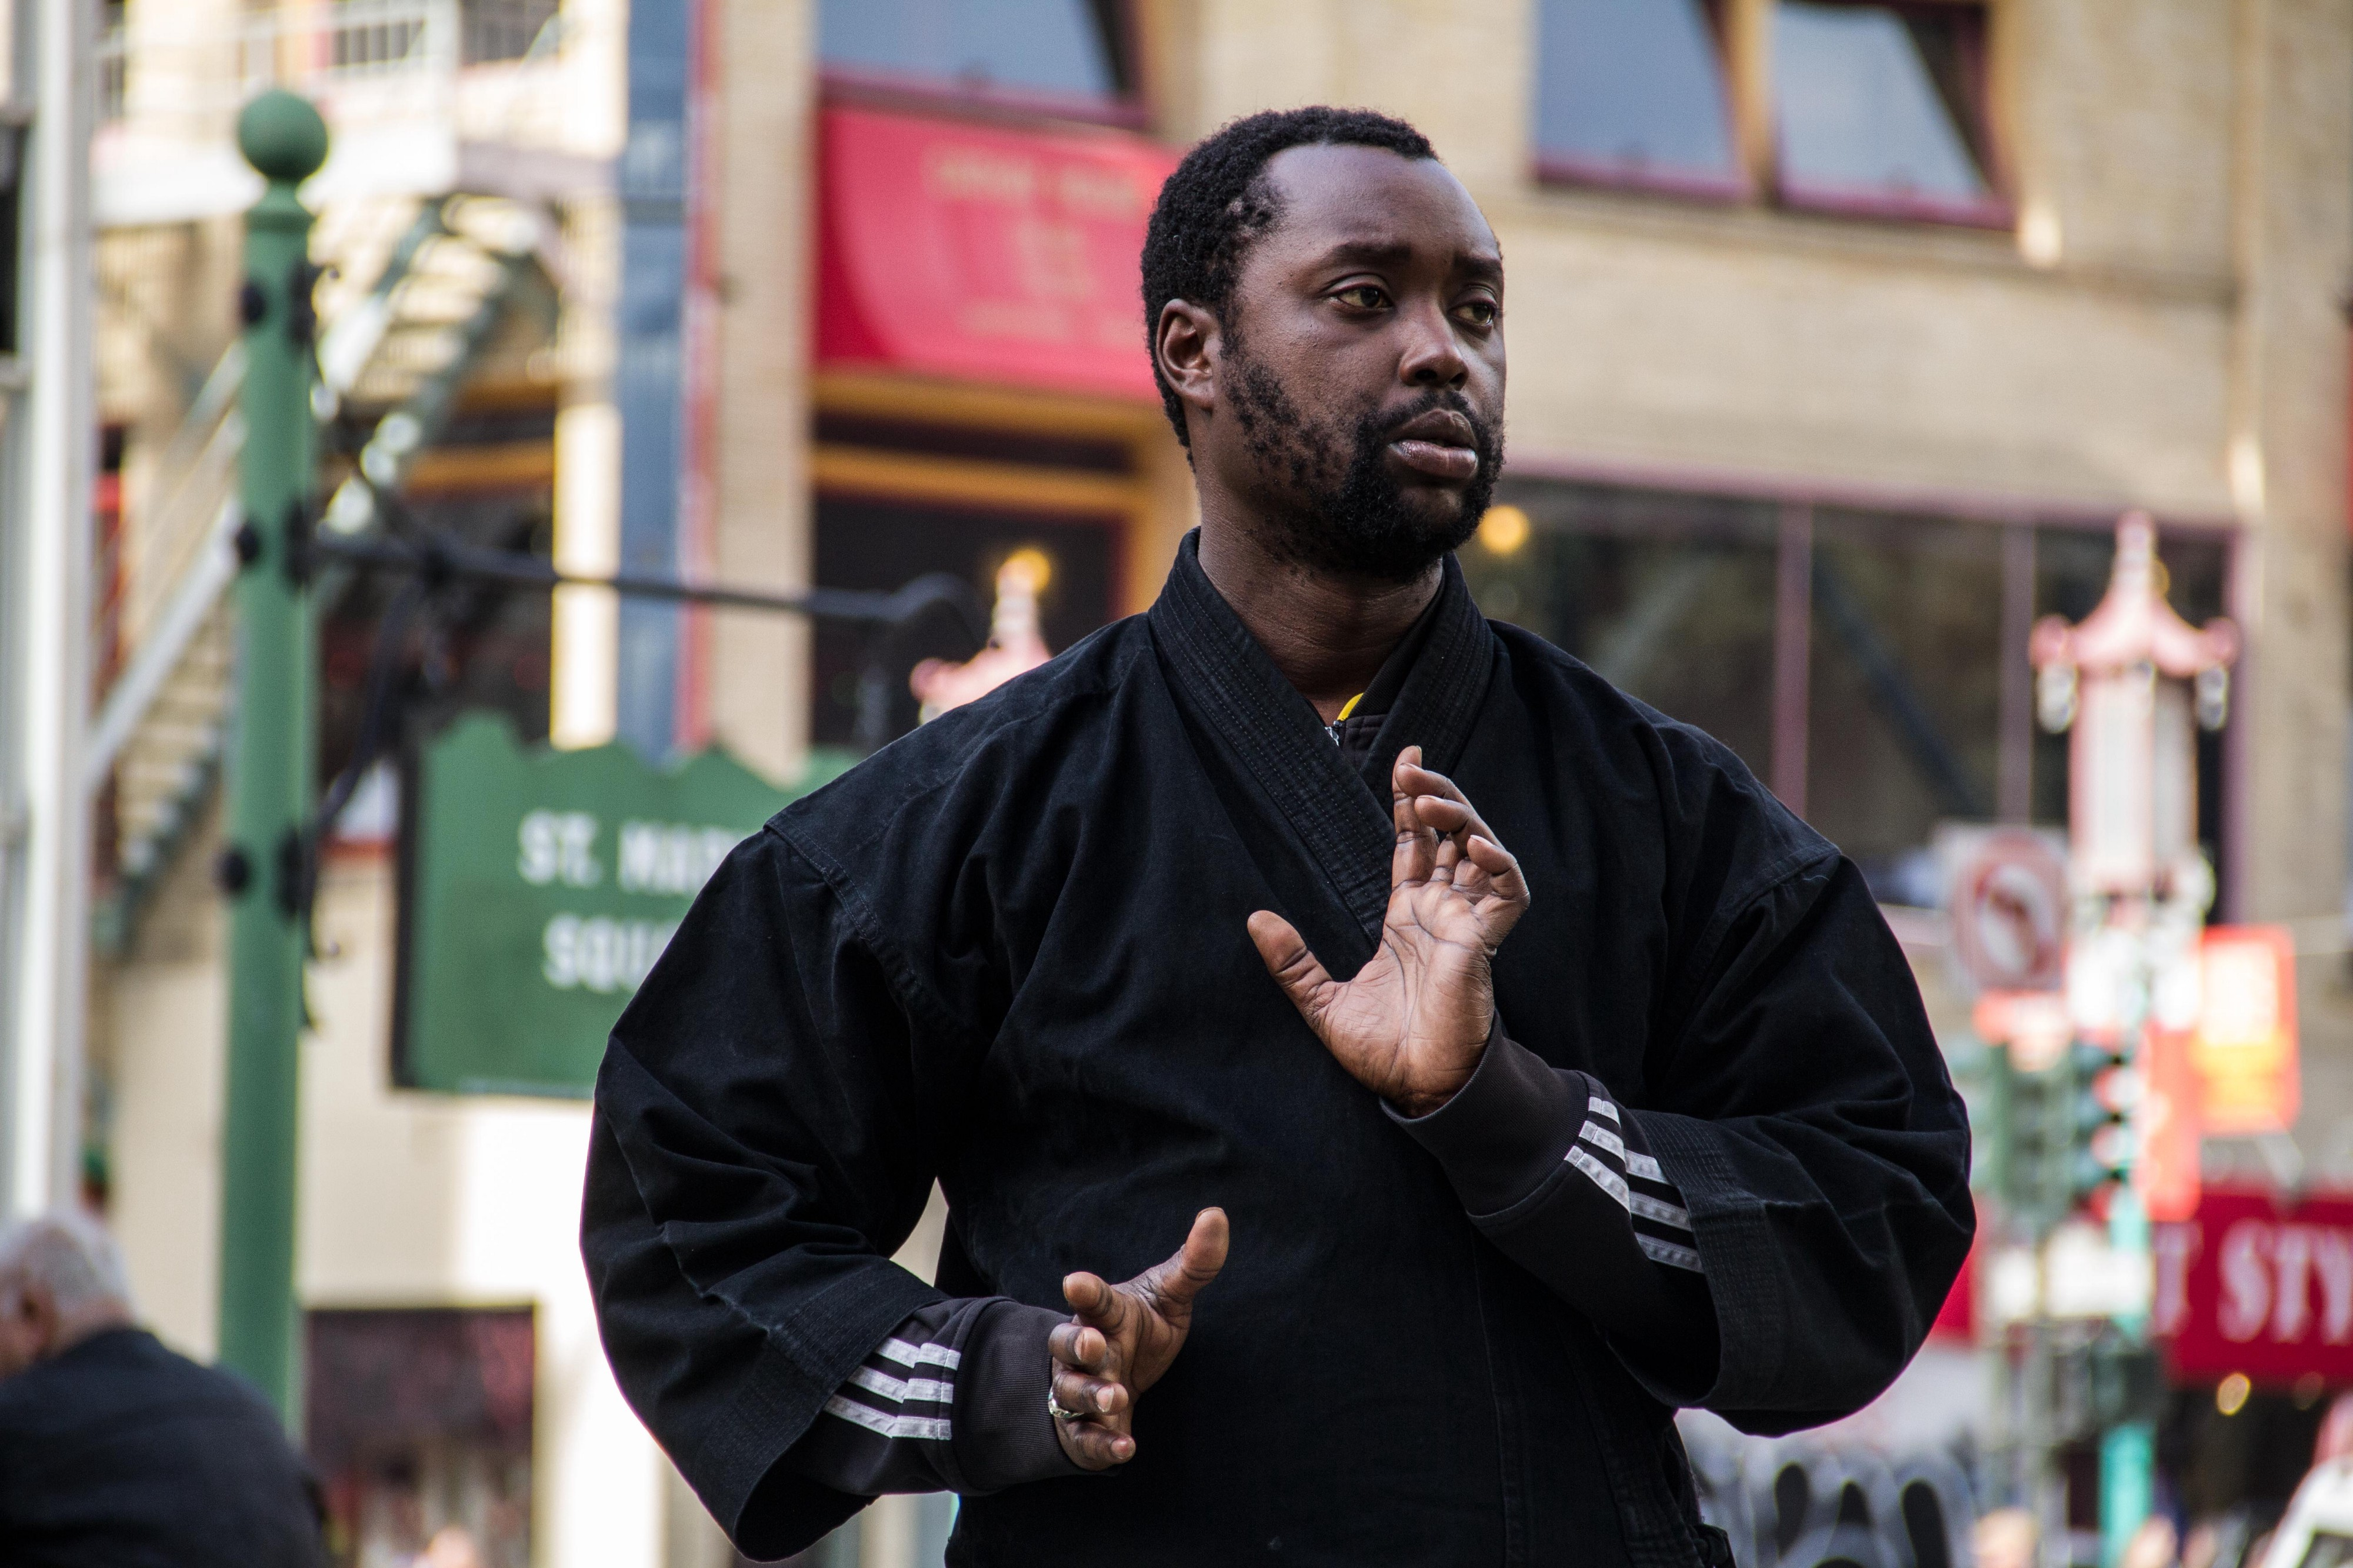 """Tai Chi helps me cope with being homeless """" Jason - Stories"""